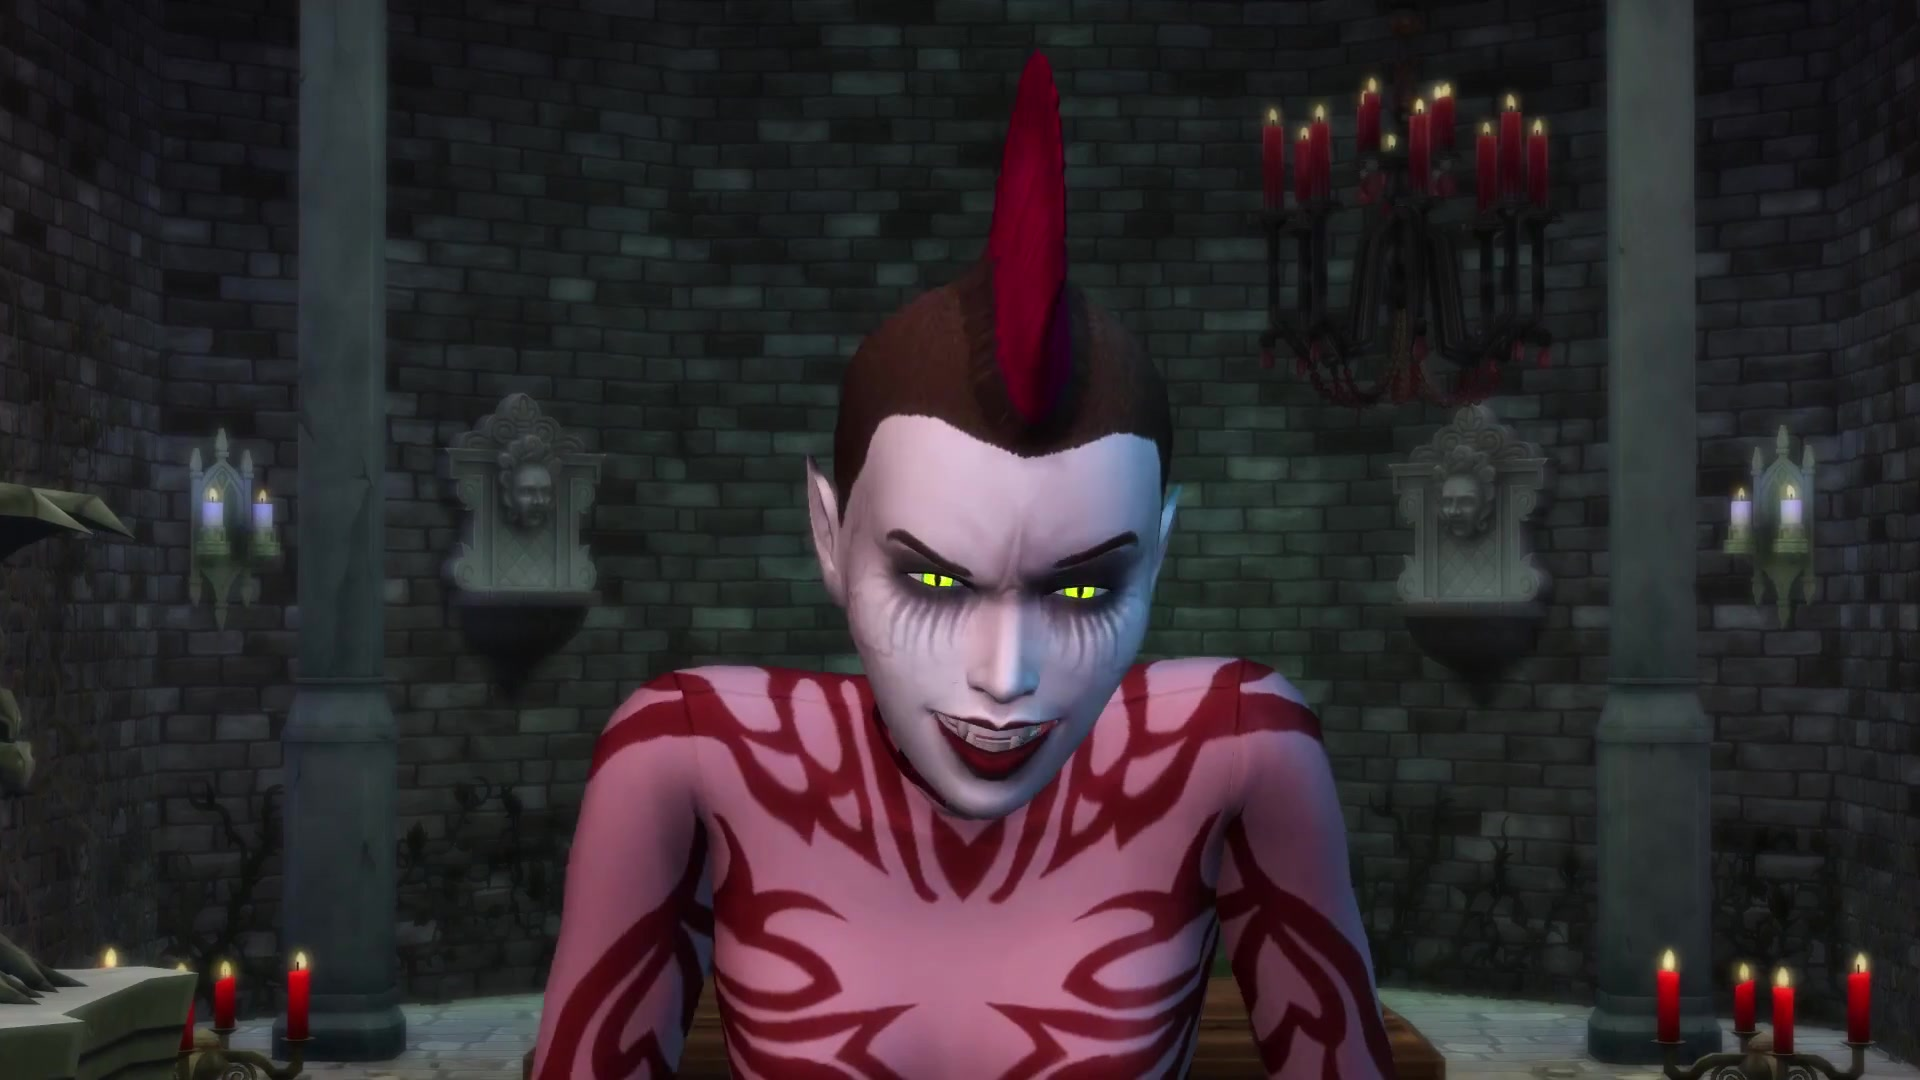 The Sims 4 Vampires Game Pack: New Official Information | SimsVIP